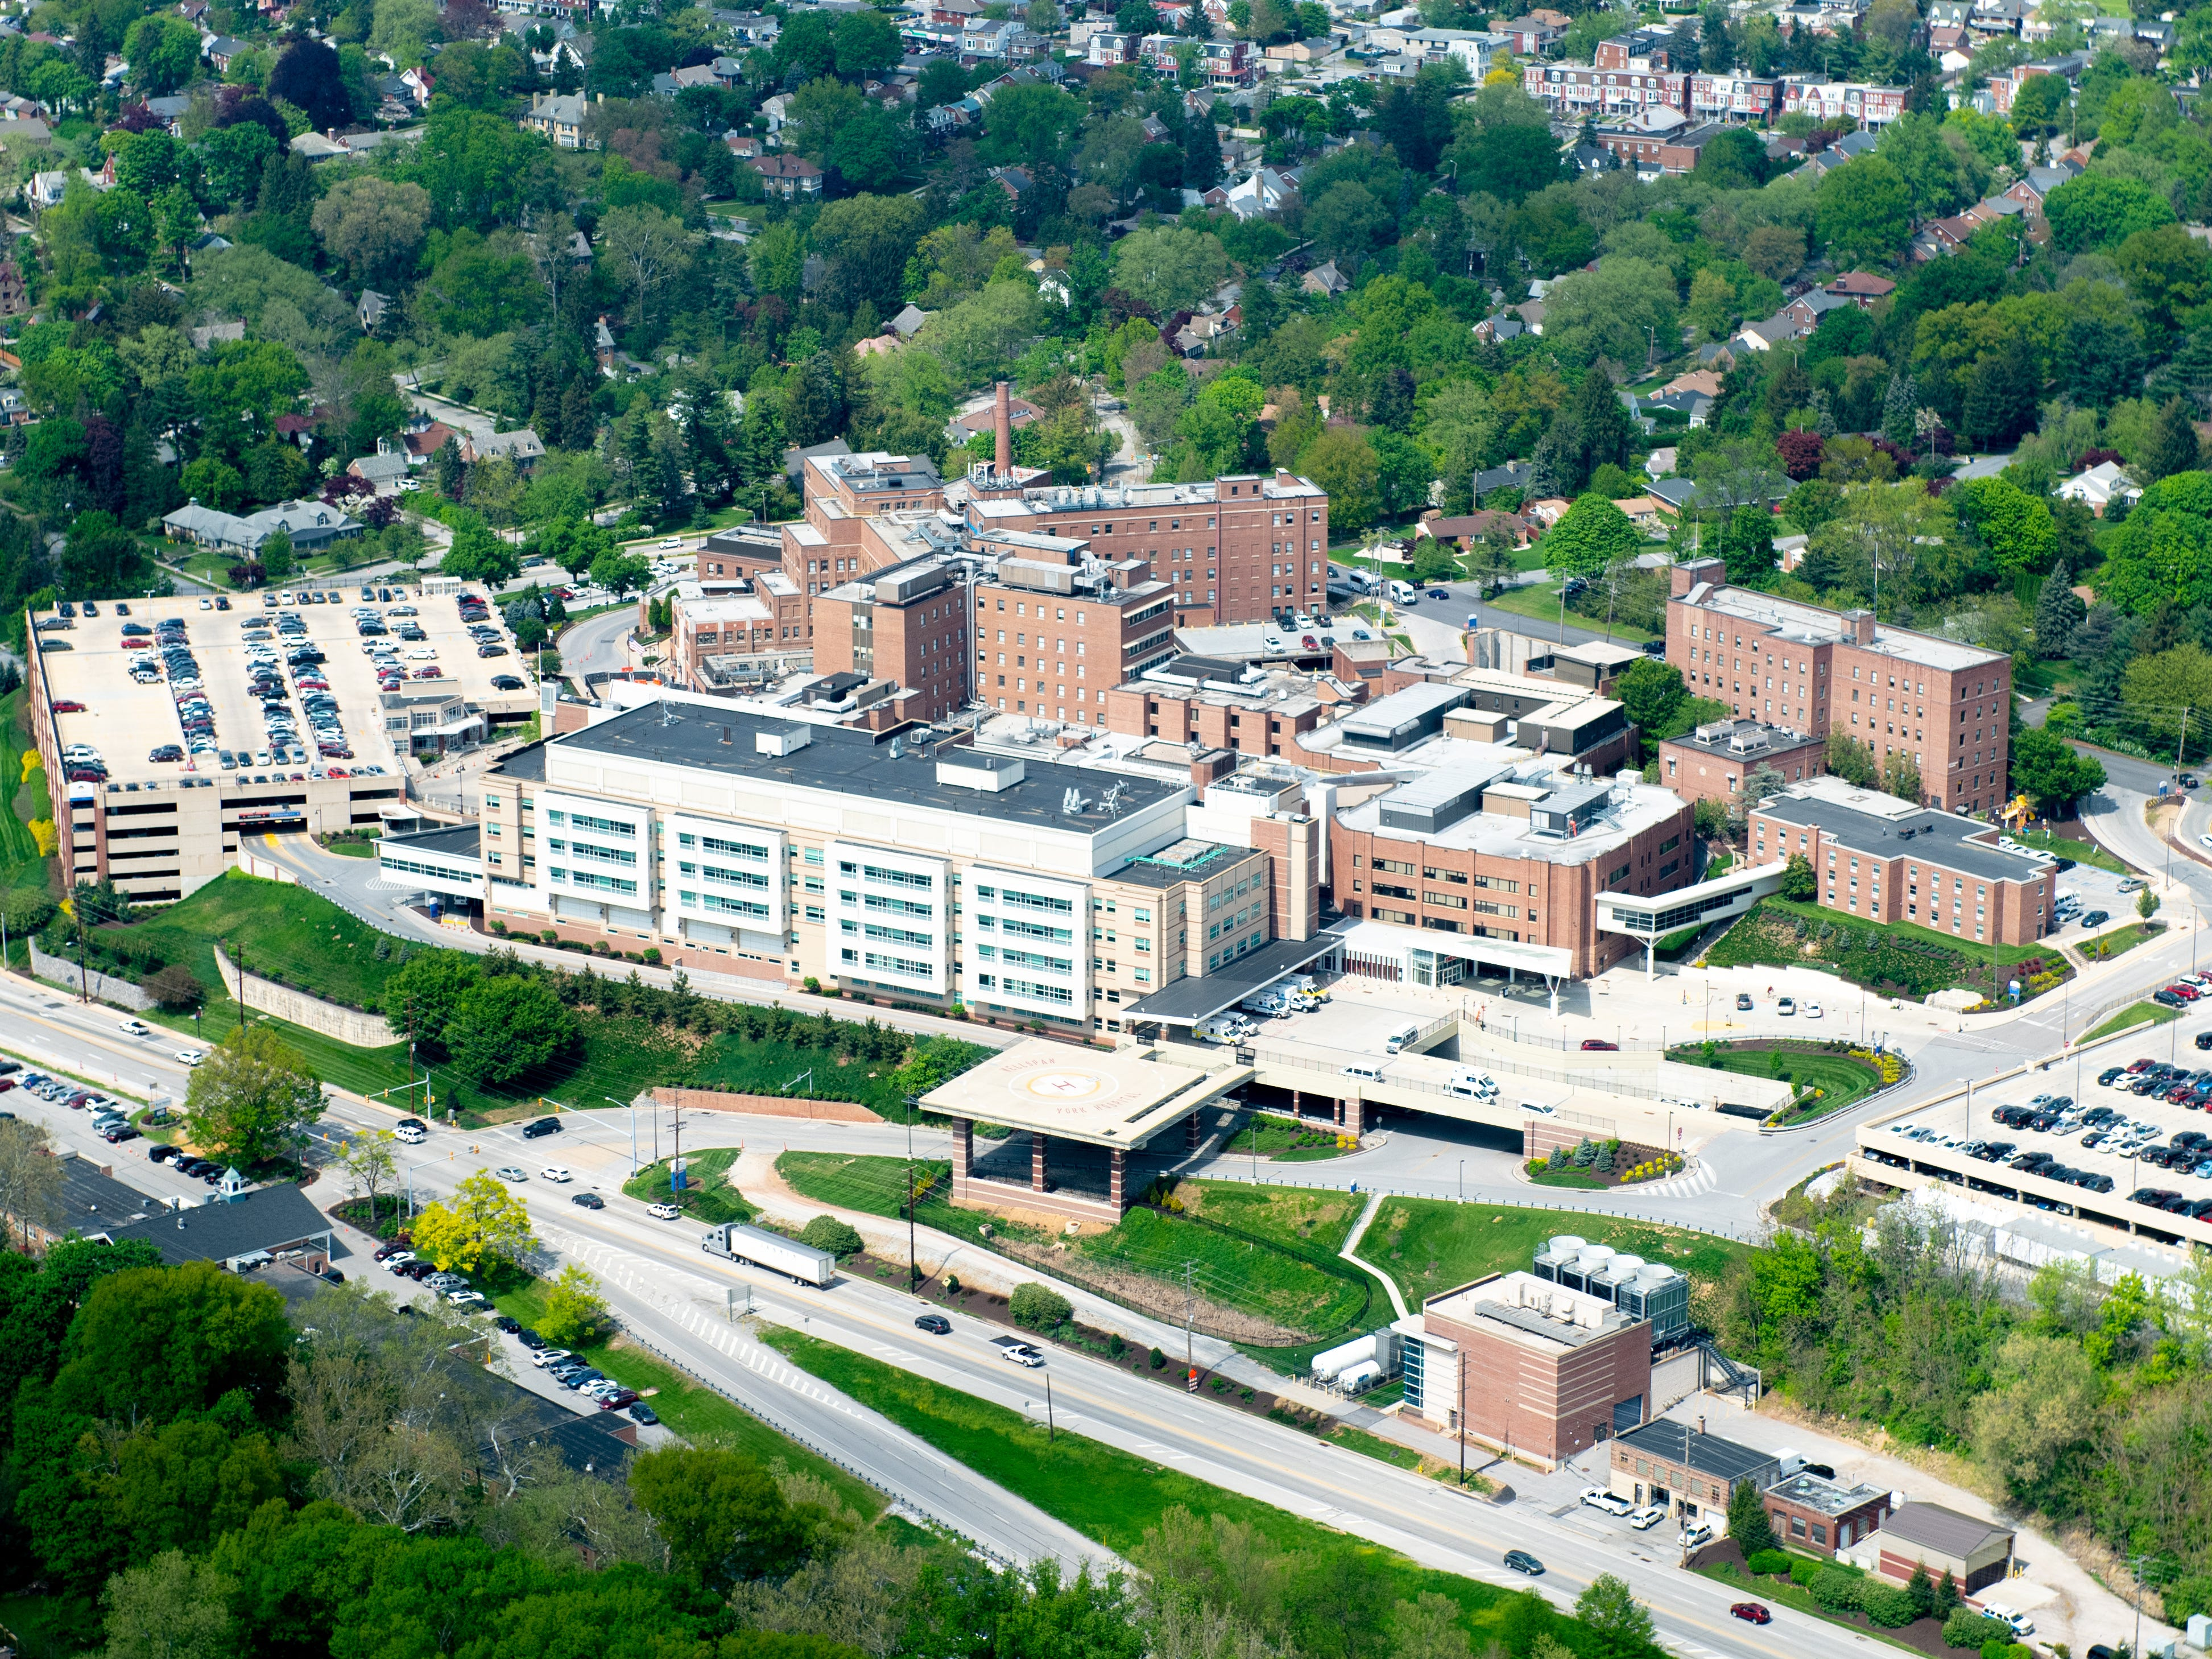 This is WellSpan York Hospital from hundreds of feet above the ground, May 2, 2019.